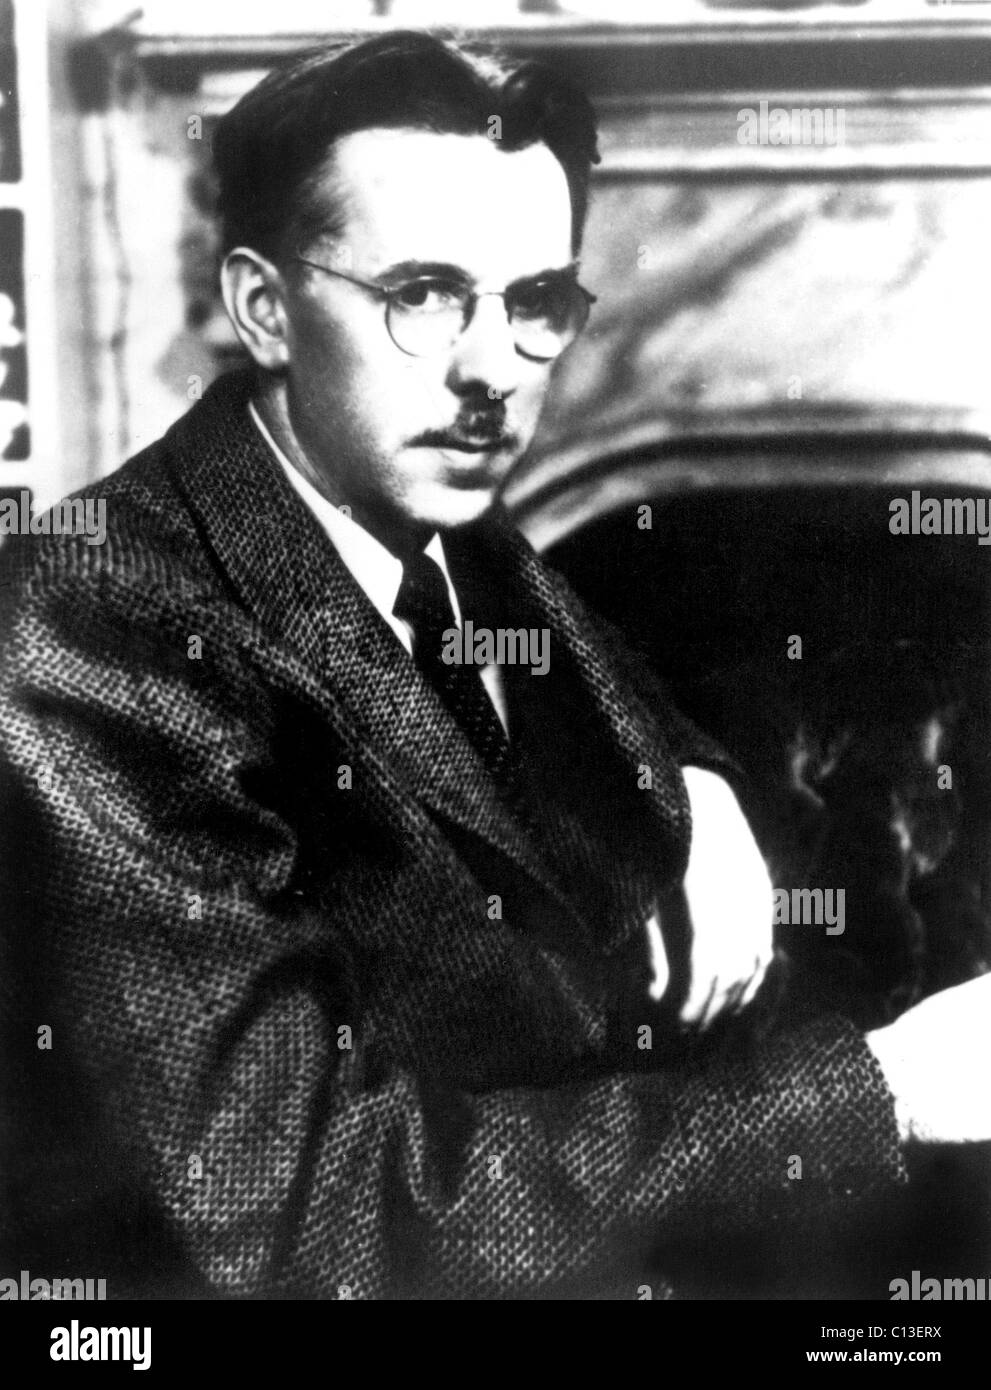 Writer/author JAMES THURBER, c. late 1930s-early 1940s Stock Photo